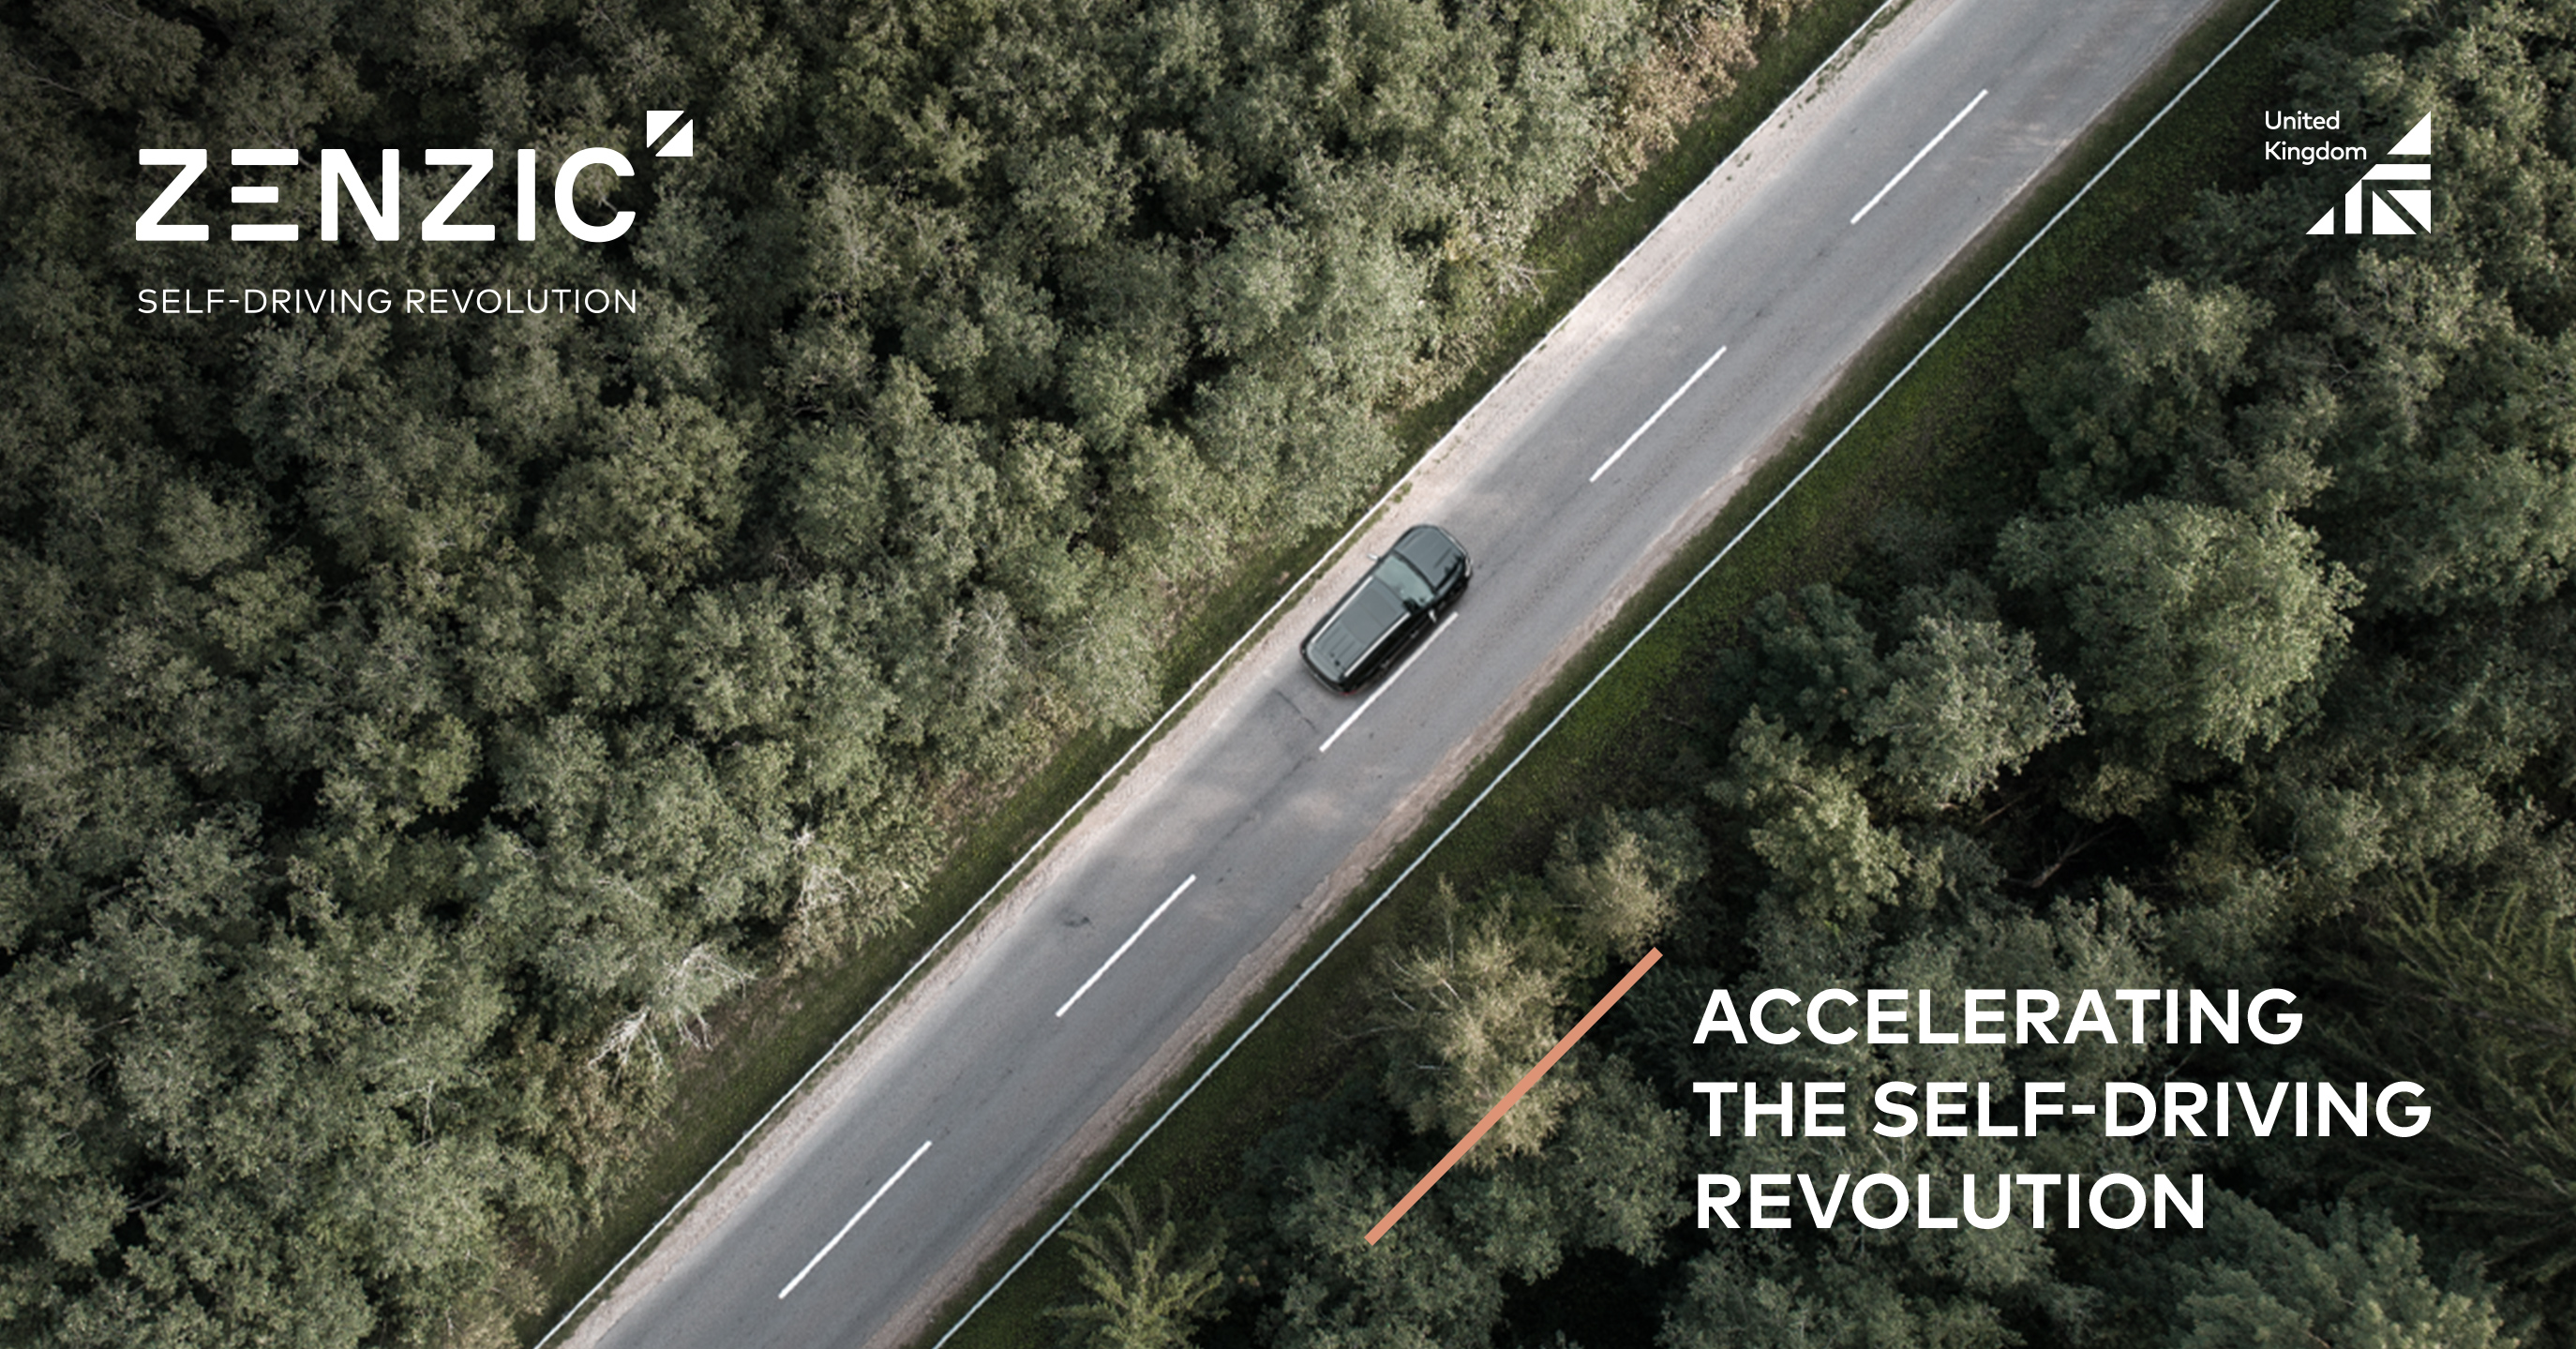 Zenzic - Accelerating the self-driving revolution. Branding on a photo of a road bisecting a forest